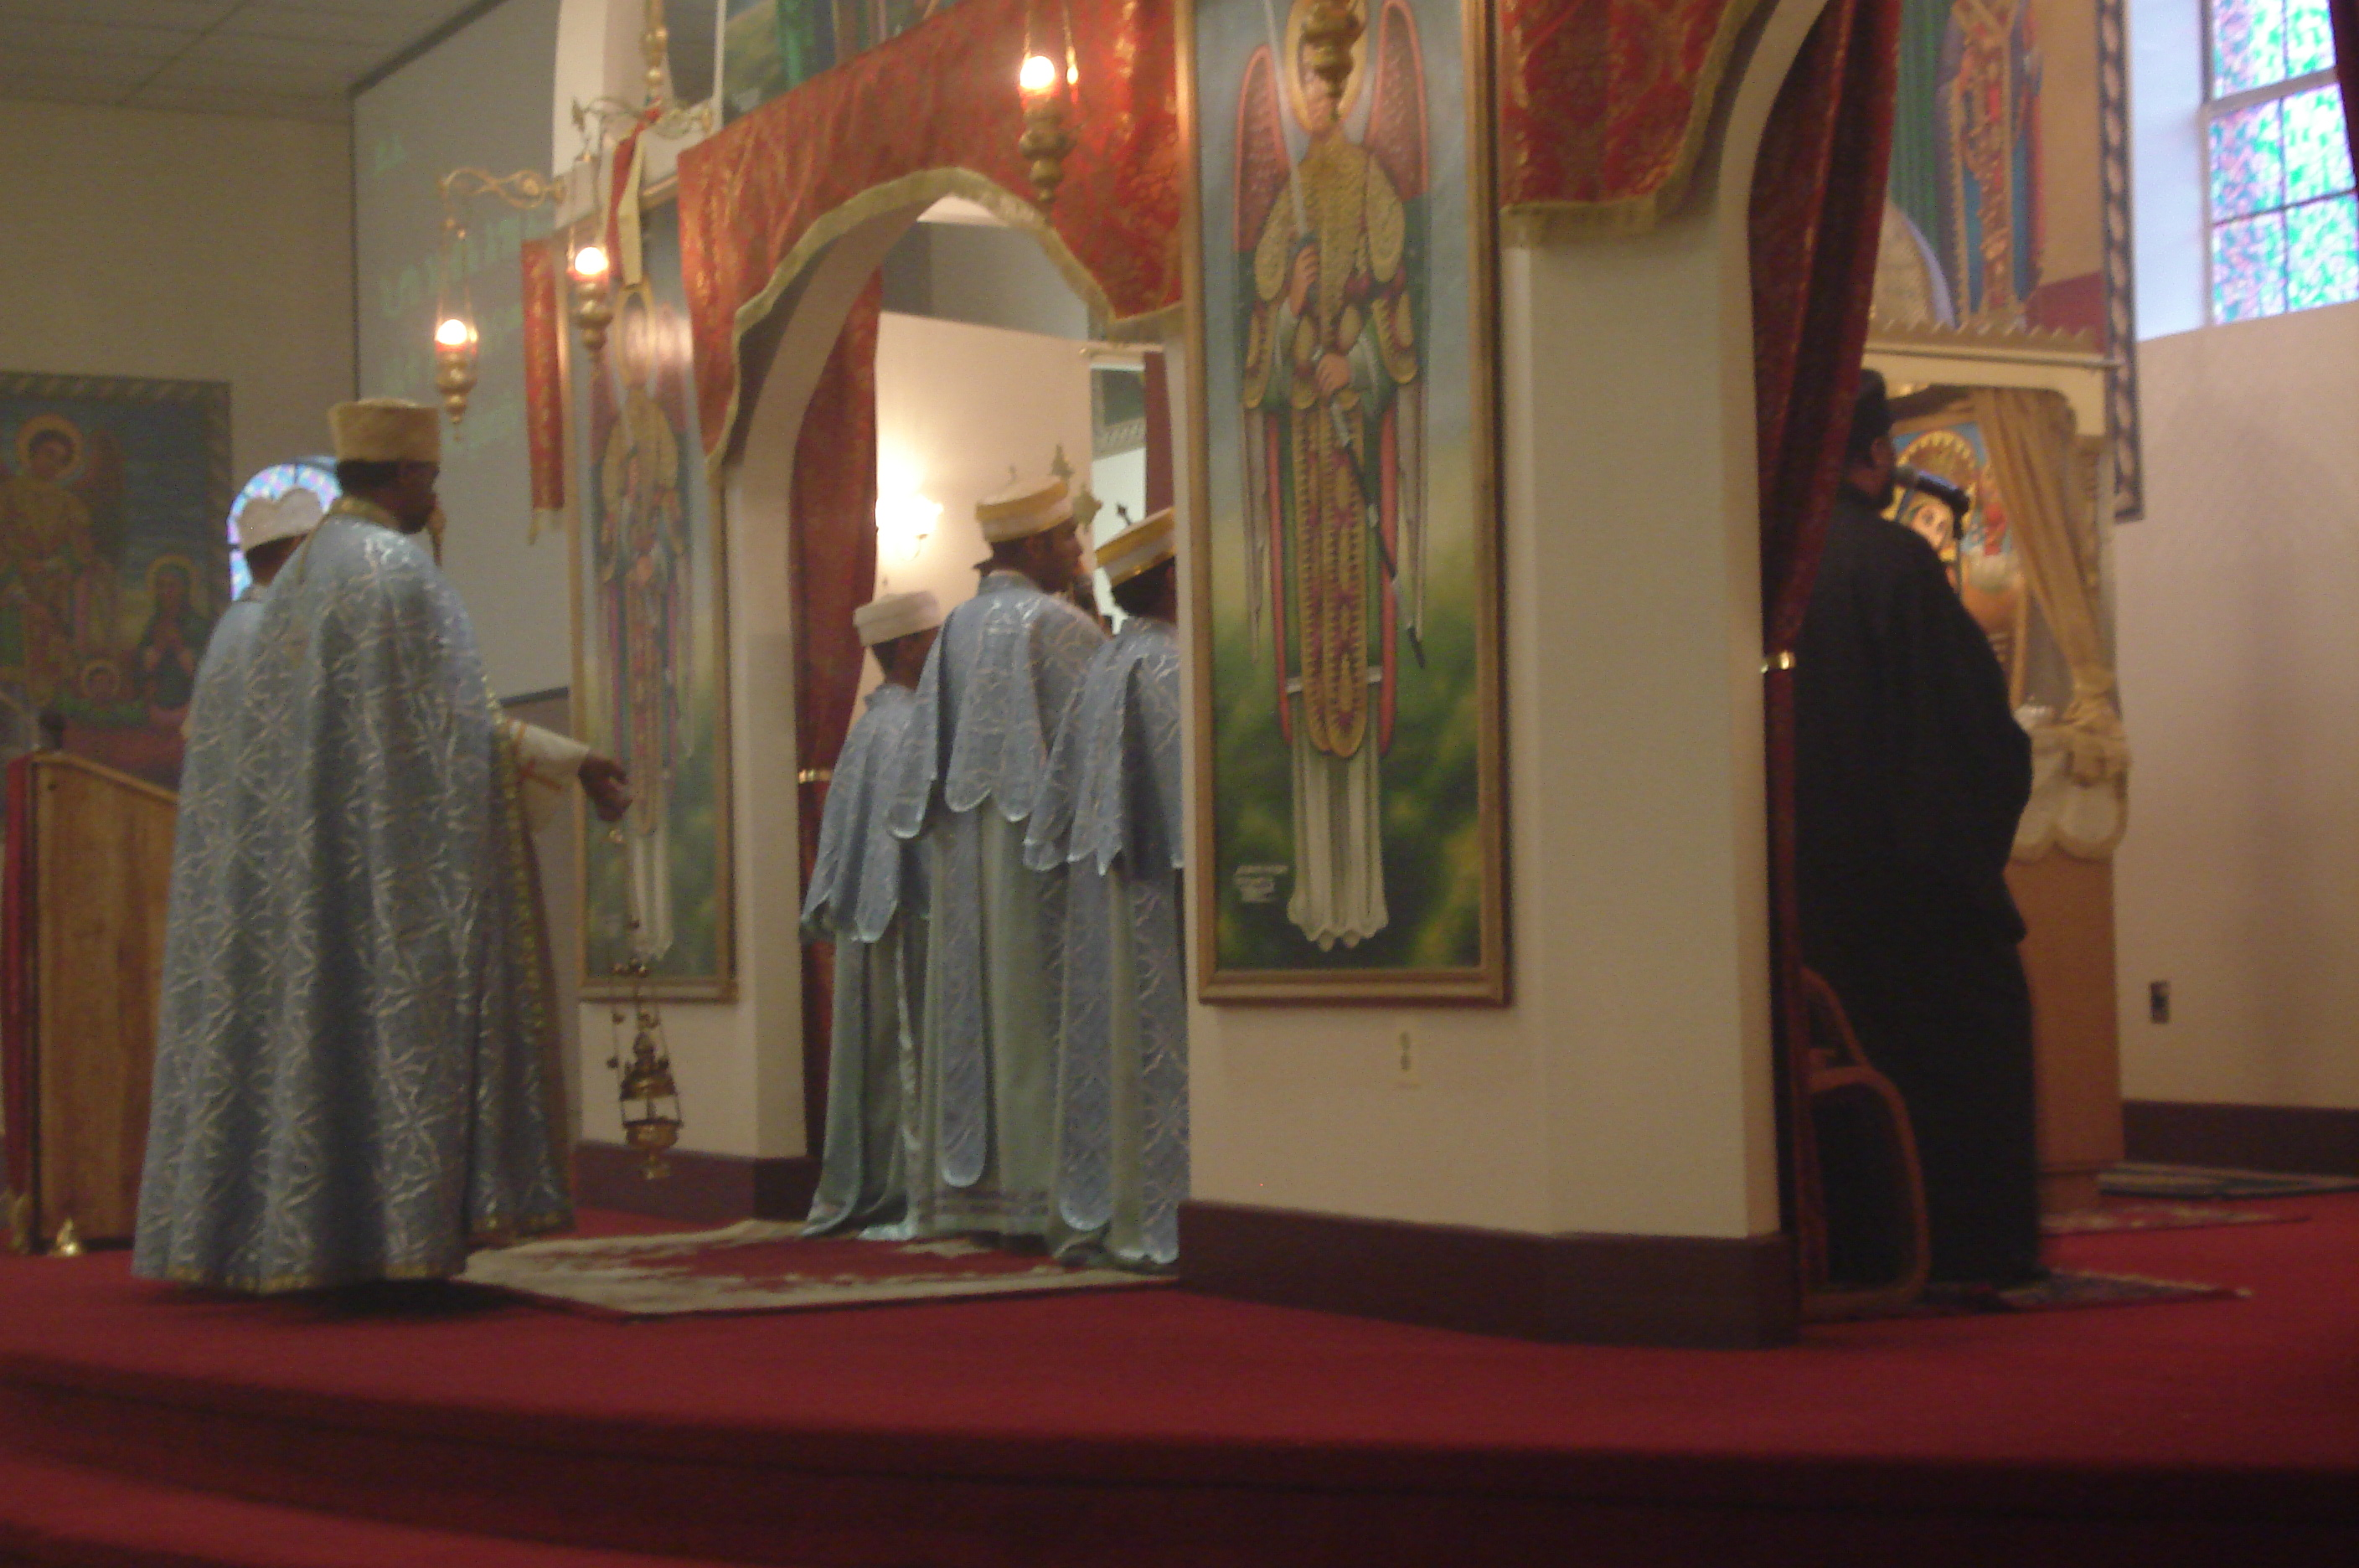 ethiopian orthodoxchurch Our church strives to fulfill the spiritual needs of its members by providing church and related services in a manner consistent with the ethiopian orthodox tewahedo church's faith, values and tradition.